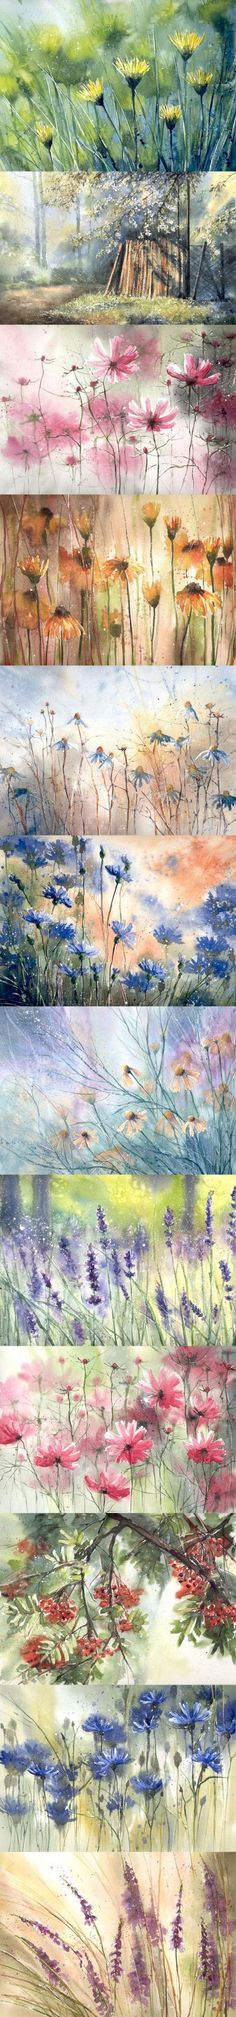 watercolour flowers #watercolor jd